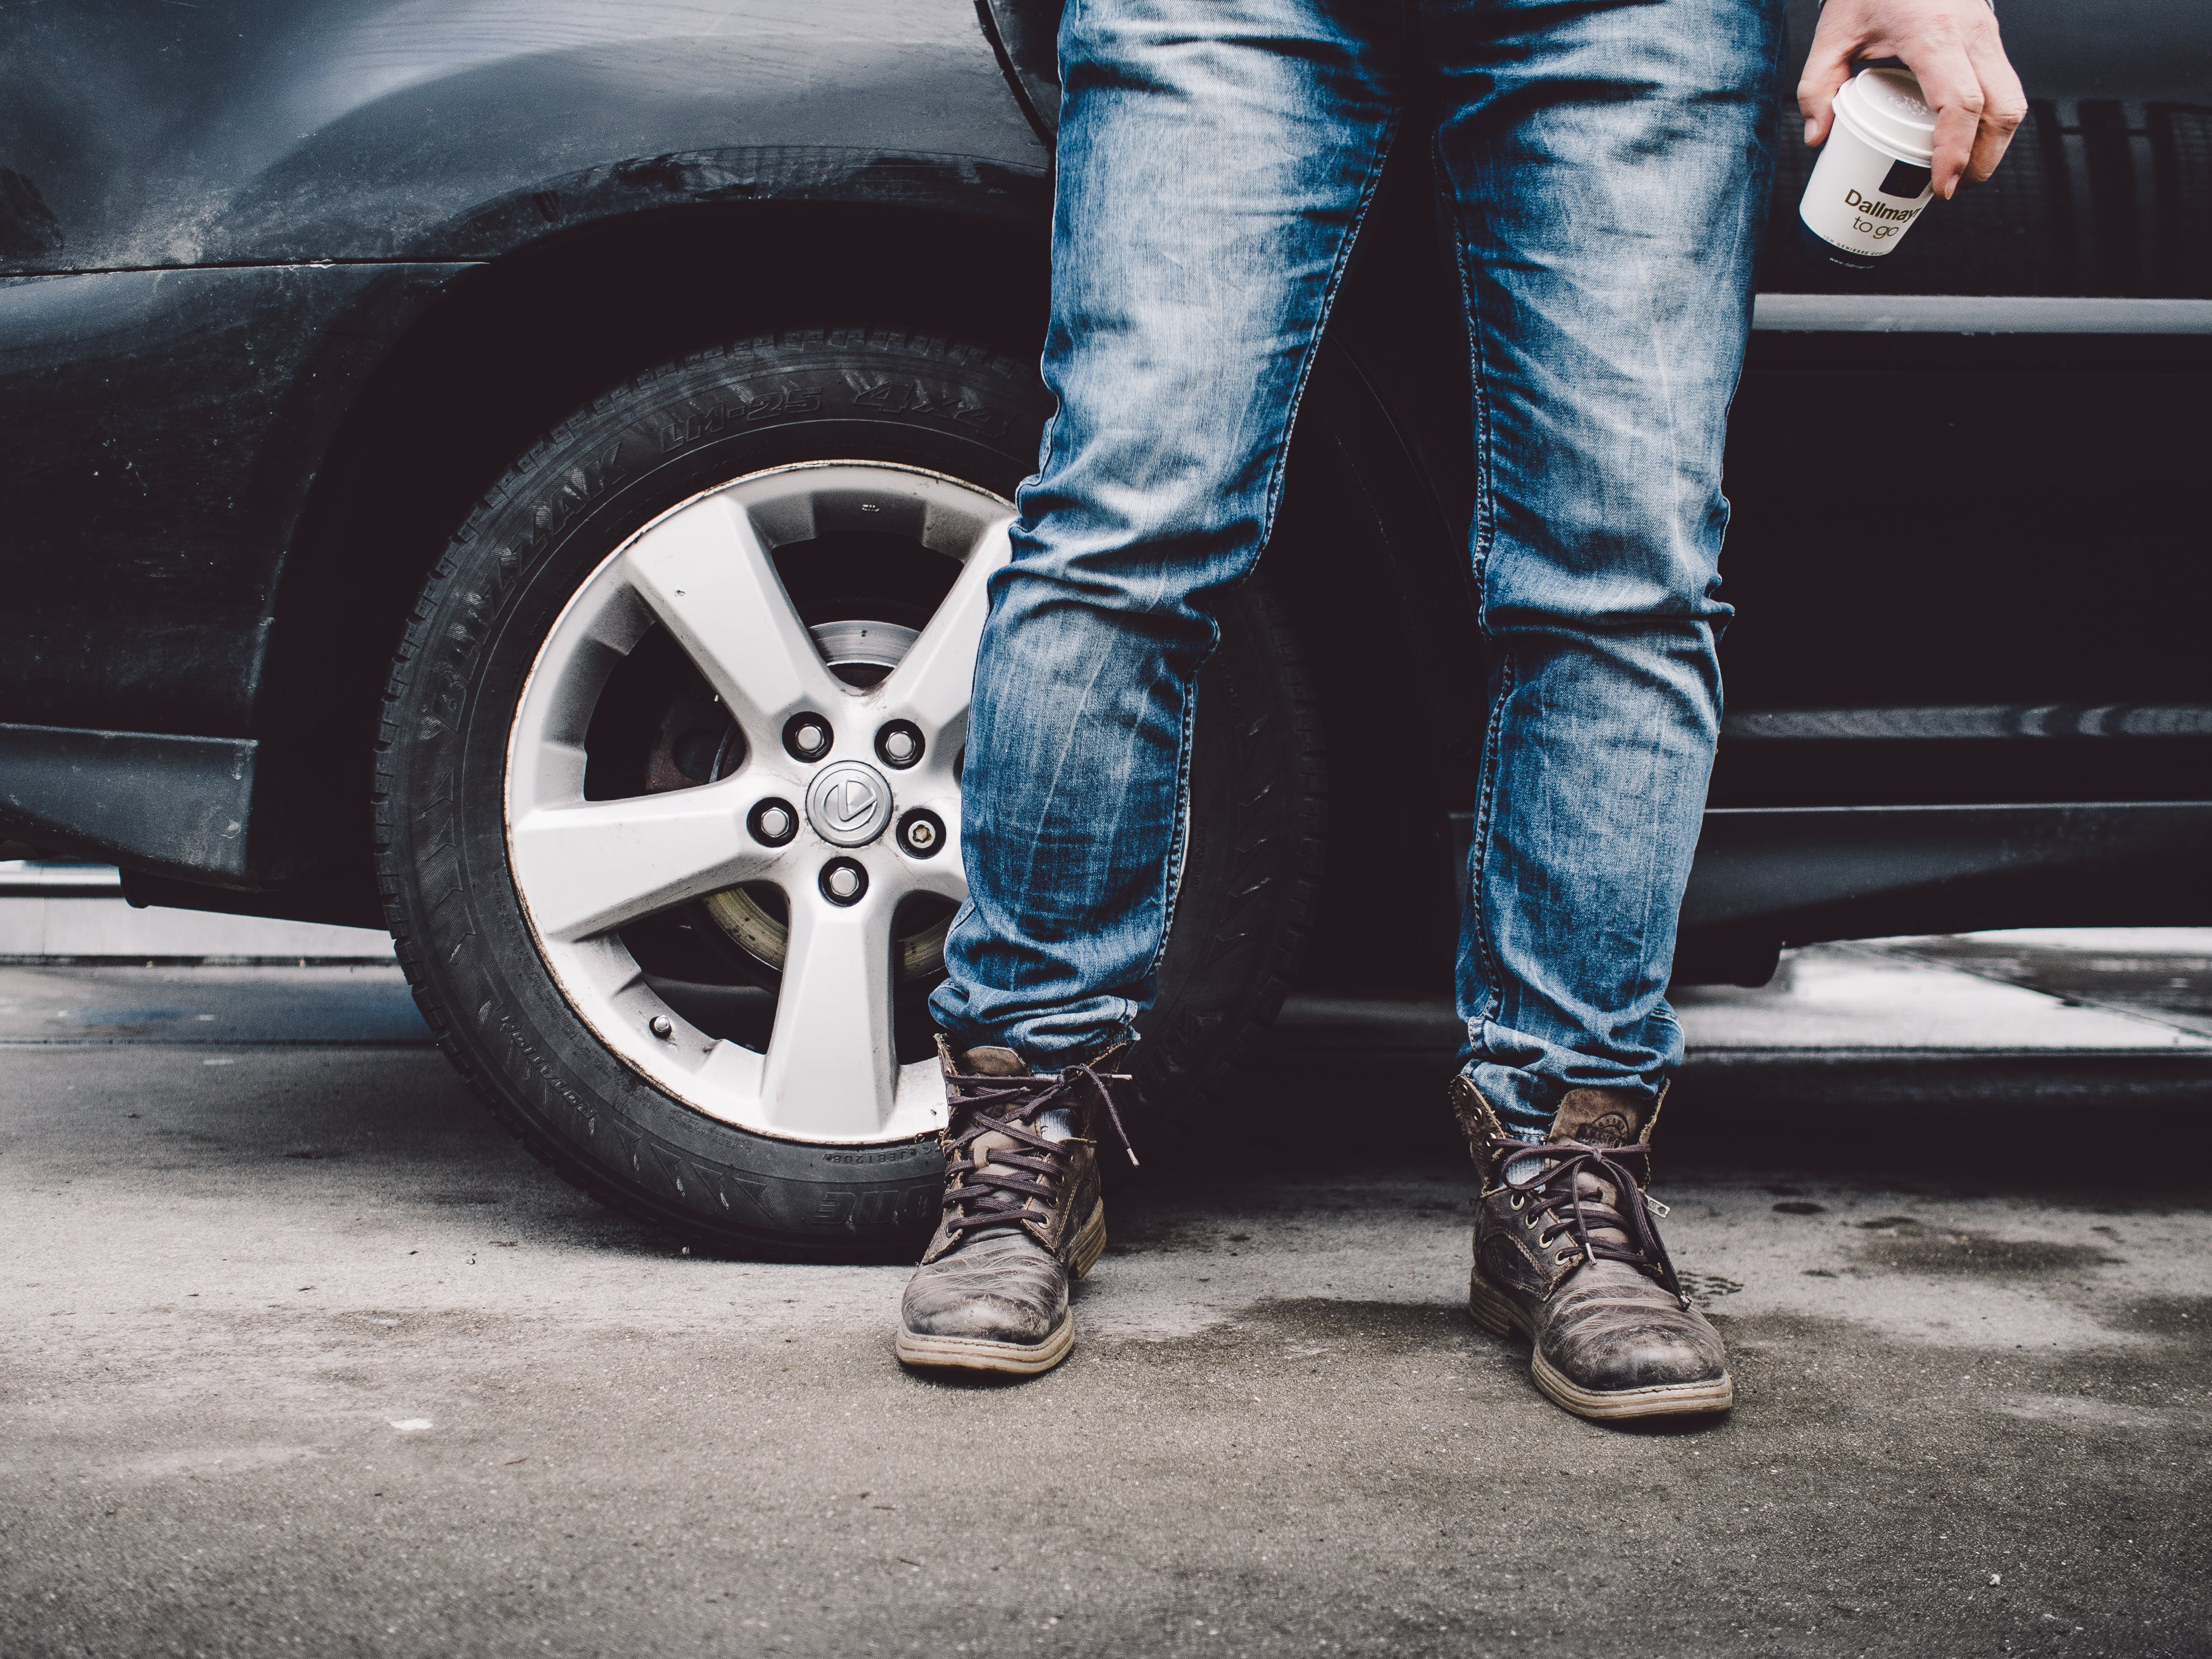 Free stock photo of fashion, car, jeans, shoes